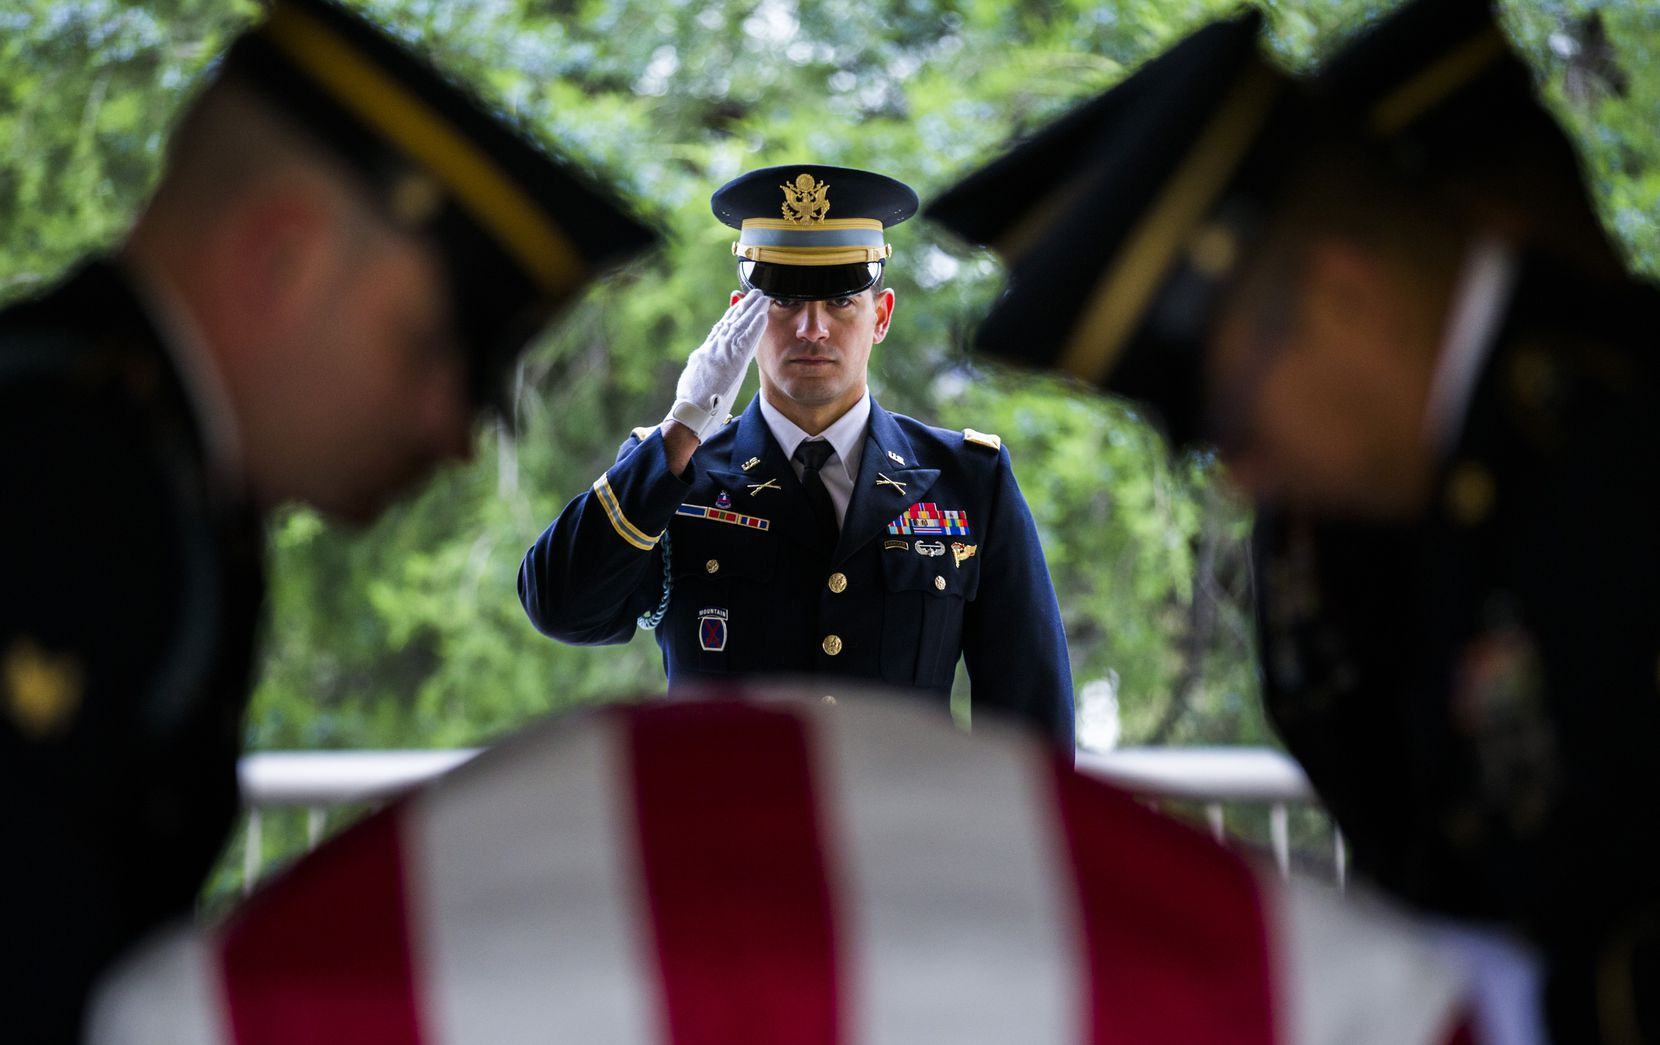 """Members of the Army Honor Guard carry a casket containing the remains of Army Corporal Albert """"Buddy"""" Mills at Dallas-Fort Worth National Cemetery on November 12, 2018 in Dallas. Mills went missing and was killed in action during the Korean War. In July, his remains were found and identified. After nearly seven decades, Albert """"Buddy"""" Mills is finally back home. Since 1950, the fate of the Dallas native had remained a mystery to his family, who knew only that he had been listed as missing and likely killed in action during the Korean War. Then, in July, one of Mills' seven surviving nieces and nephews got a surprising call: An unidentified soldier's remains, tested at another family's request, had turned out to be those of Mills, finally giving his family the closure they thought they'd never find."""